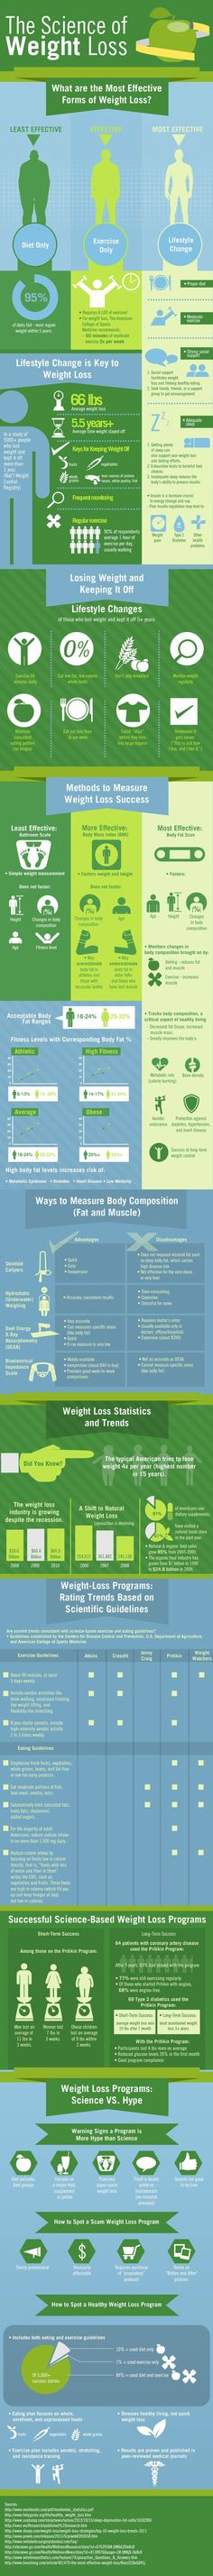 The science of weight loss Love this...Shaklee puts the $ into the R&D not the hype & is published in over 90 peer review journals! Facts!